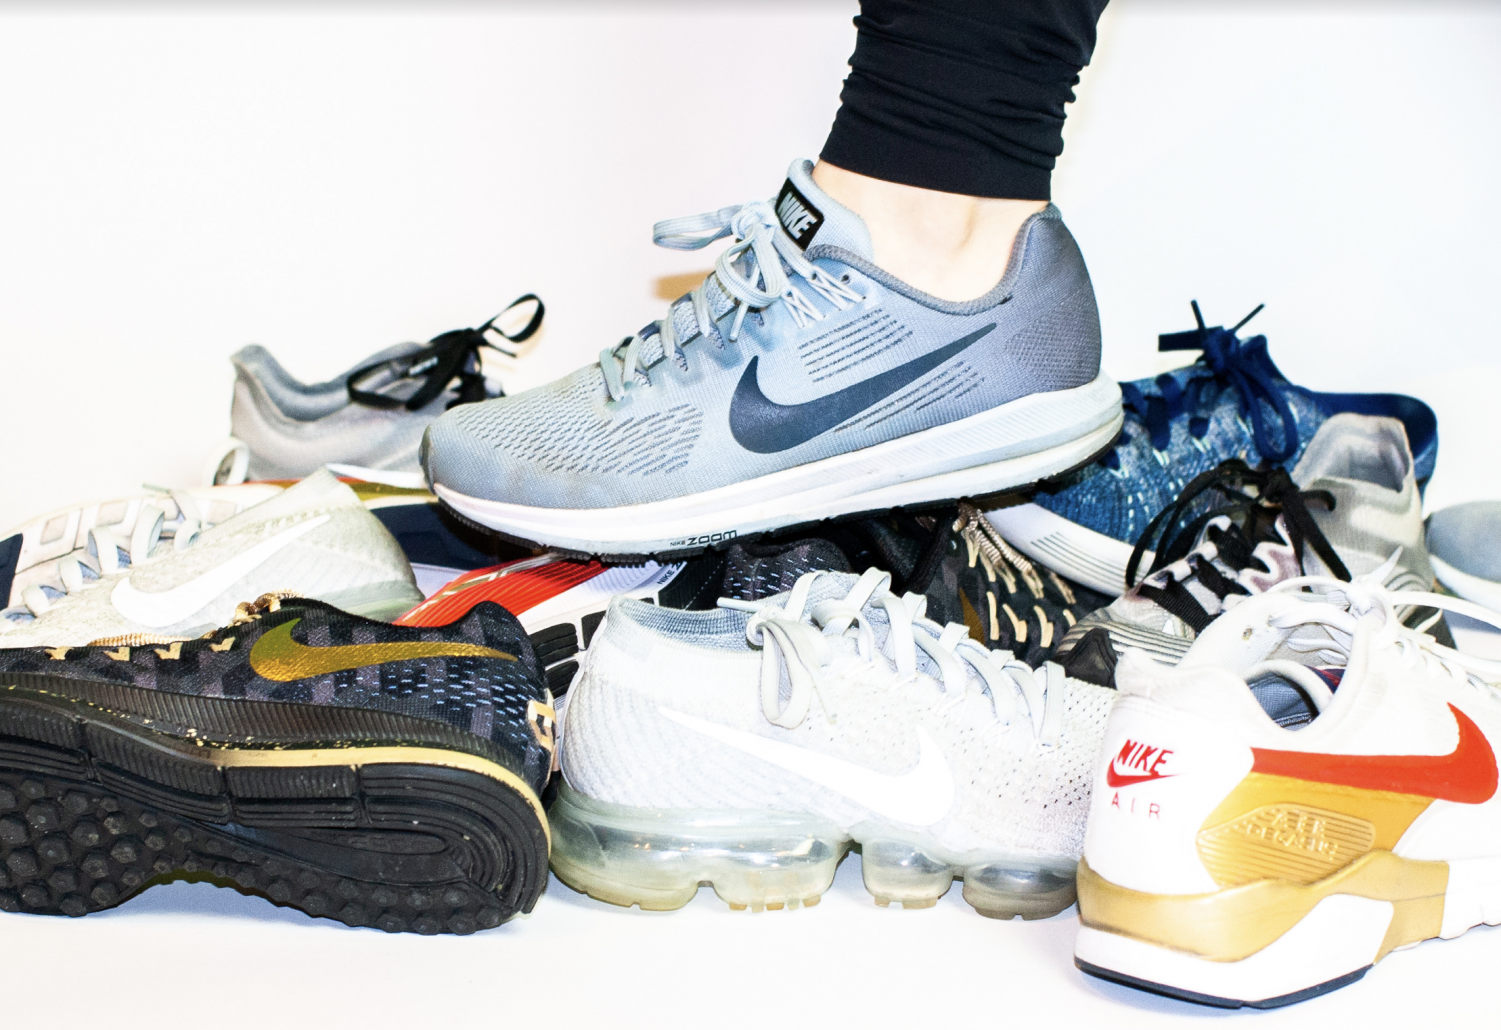 Brands like Nike, Adidas and Brooks carry many different models of shoes made for all kinds of feet.